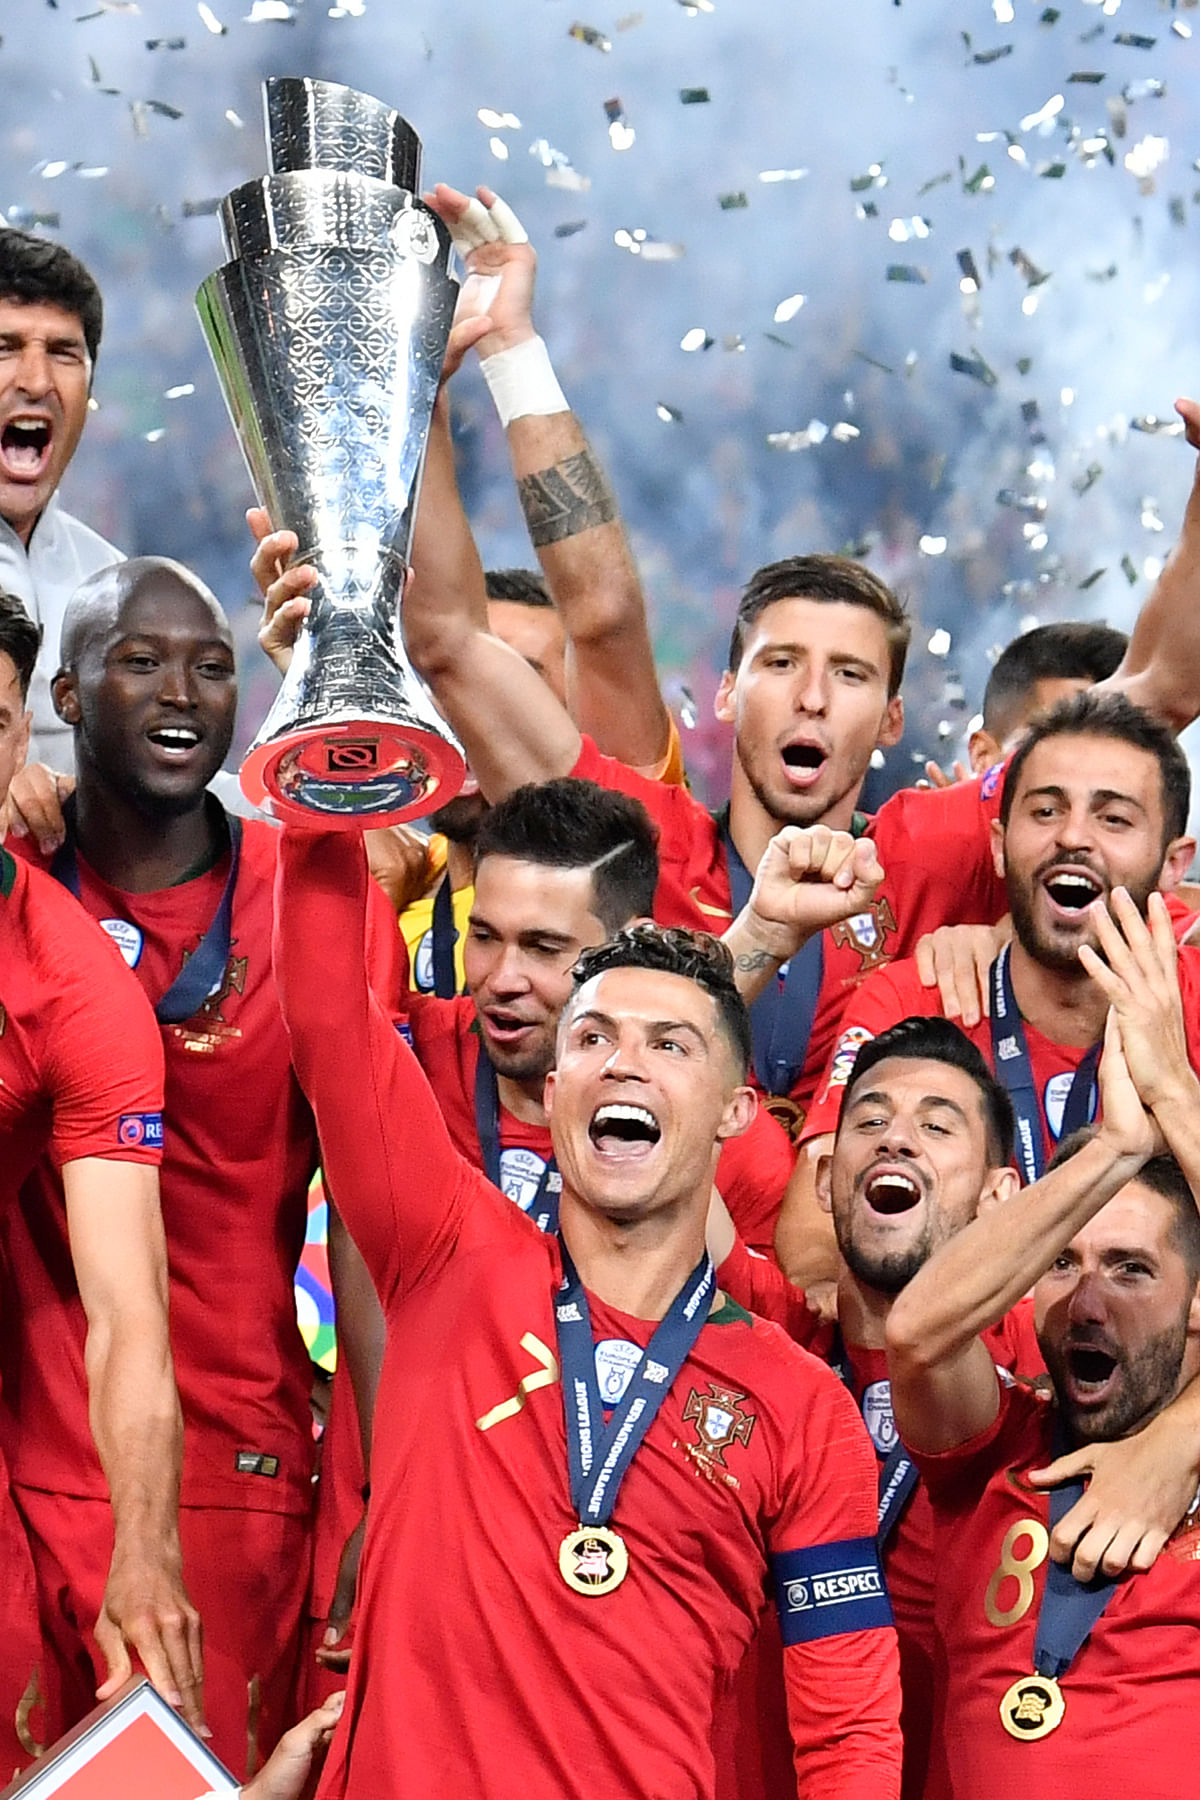 Portugal's Cristiano Ronaldo lifts up the trophy as he celebrates with players after winning the UEFA Nations League final soccer match between Portugal and Netherlands at the Dragao stadium in Porto, Portugal, Sunday, June 9, 2019. Portugal won 1-0. (AP Photo/Martin Meissner)